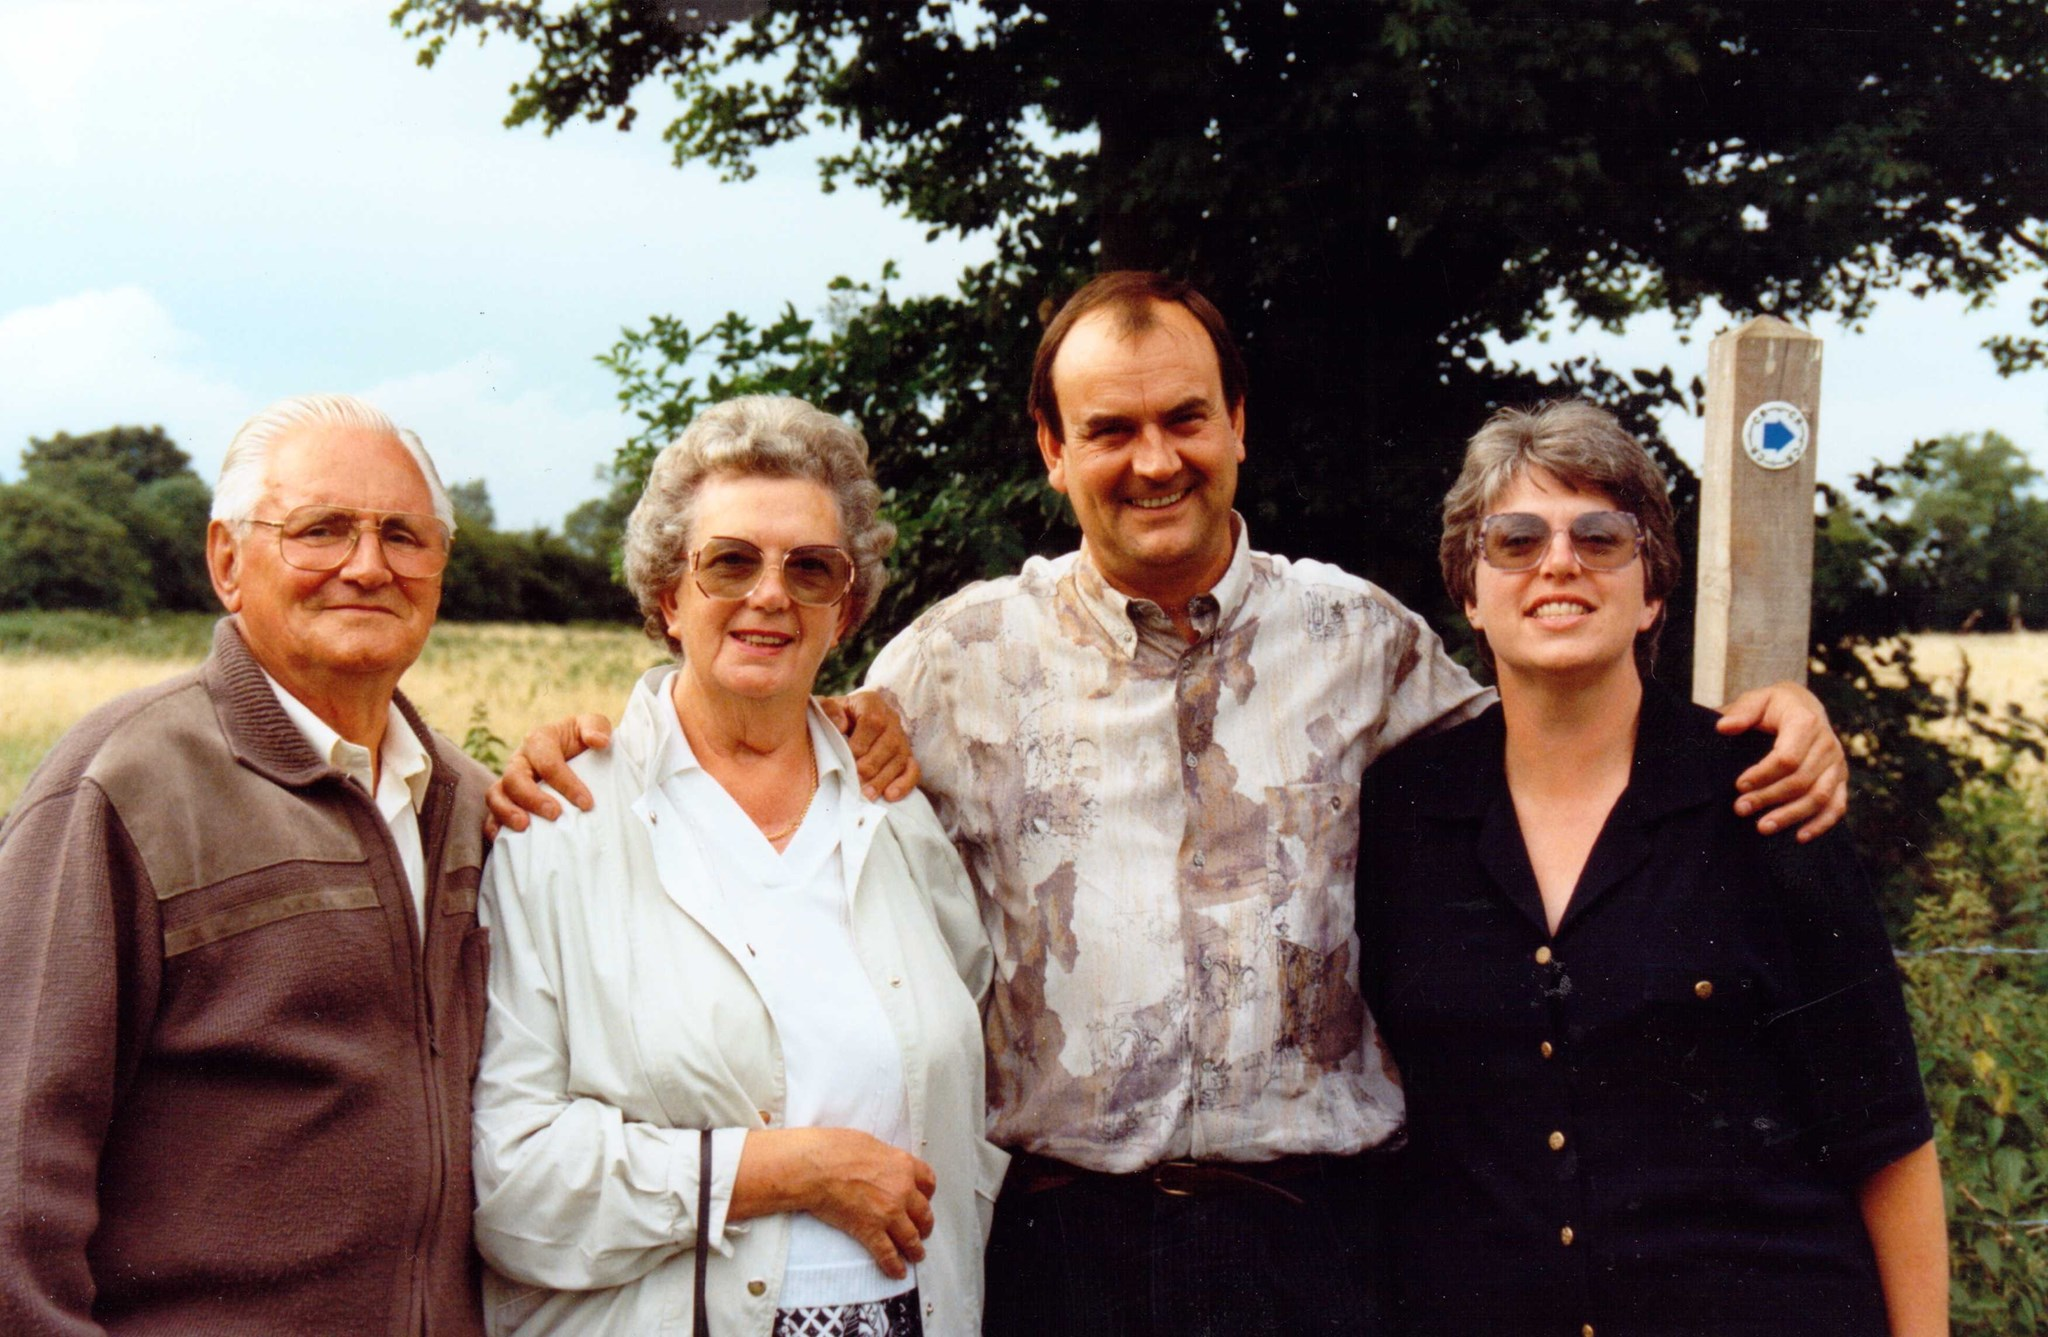 Roger with his parents, George & Mary, and sister, Sally-Ann